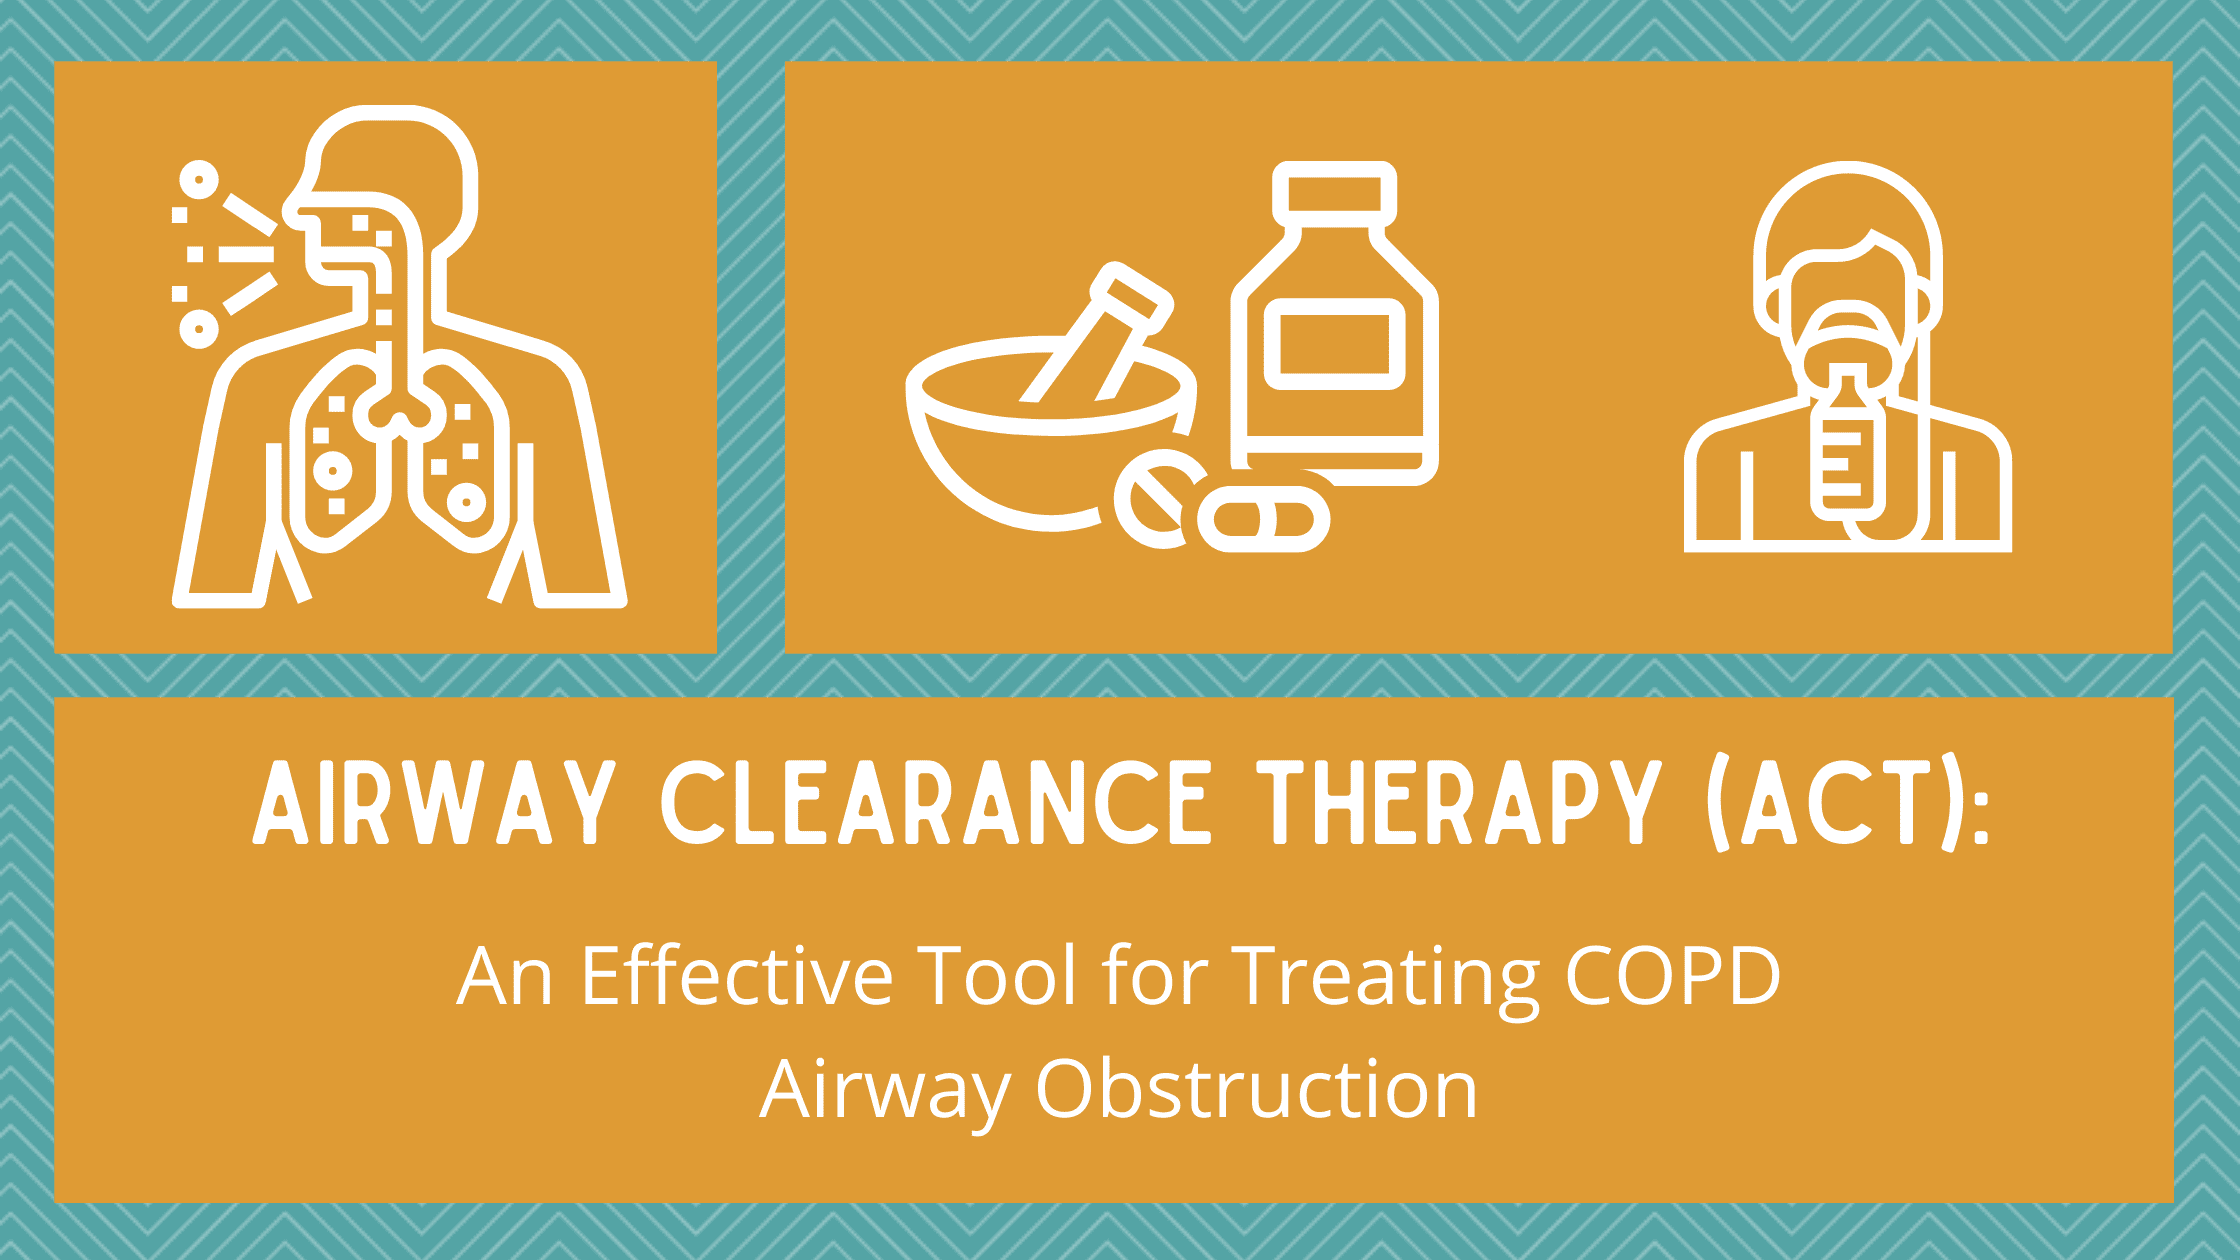 Airway Clearance Therapy (ACT): An Effective Tool for Treating COPD Airway Obstruction